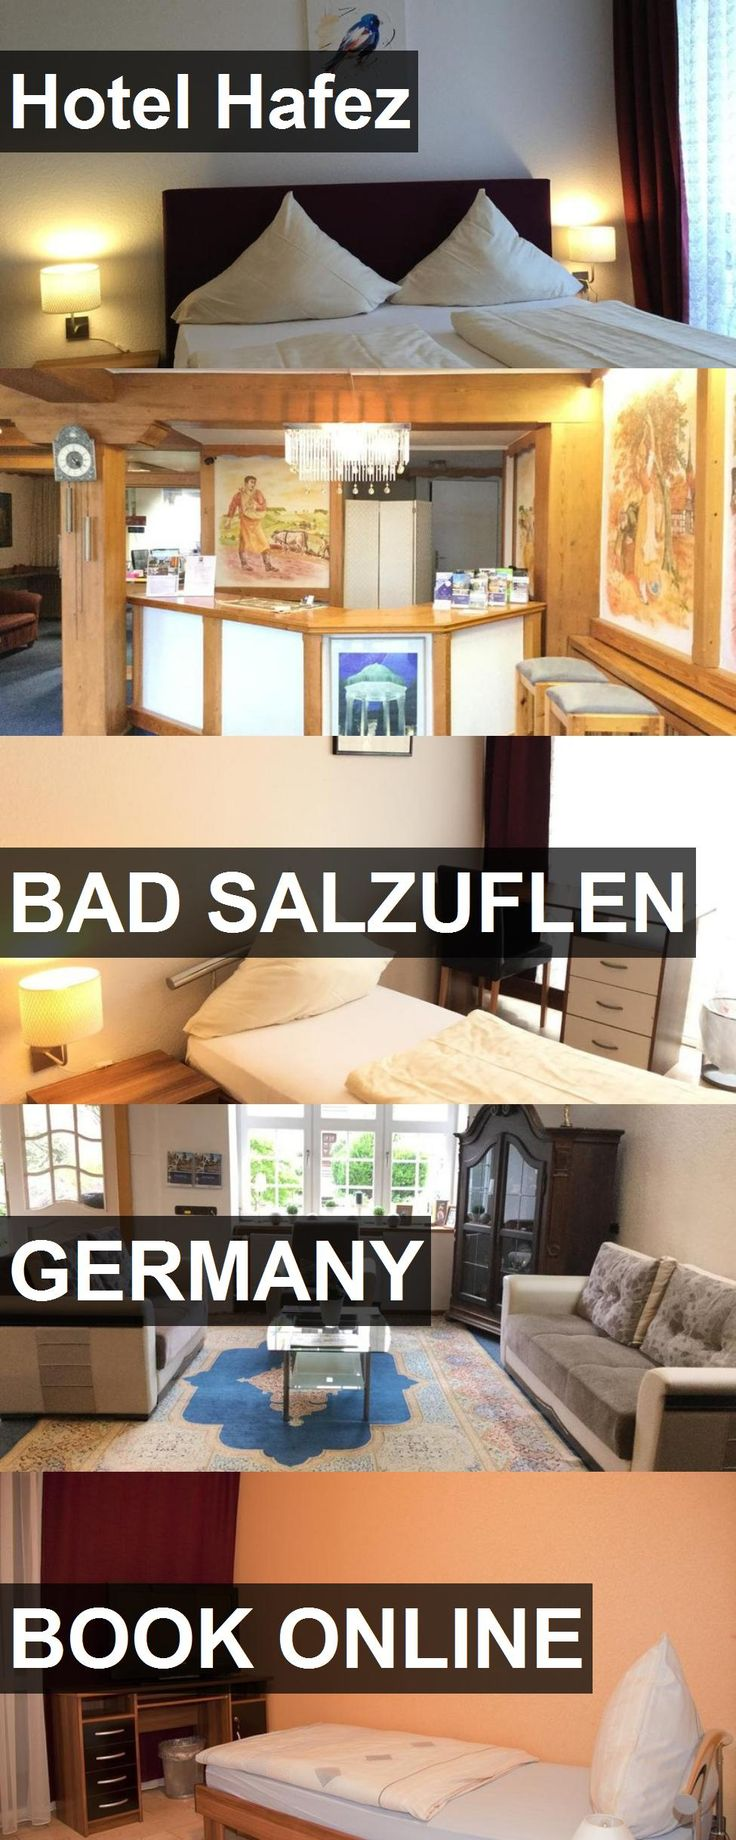 Hotel Hafez in Bad Salzuflen, Germany. For more information, photos, reviews and best prices please follow the link. #Germany #BadSalzuflen #travel #vacation #hotel